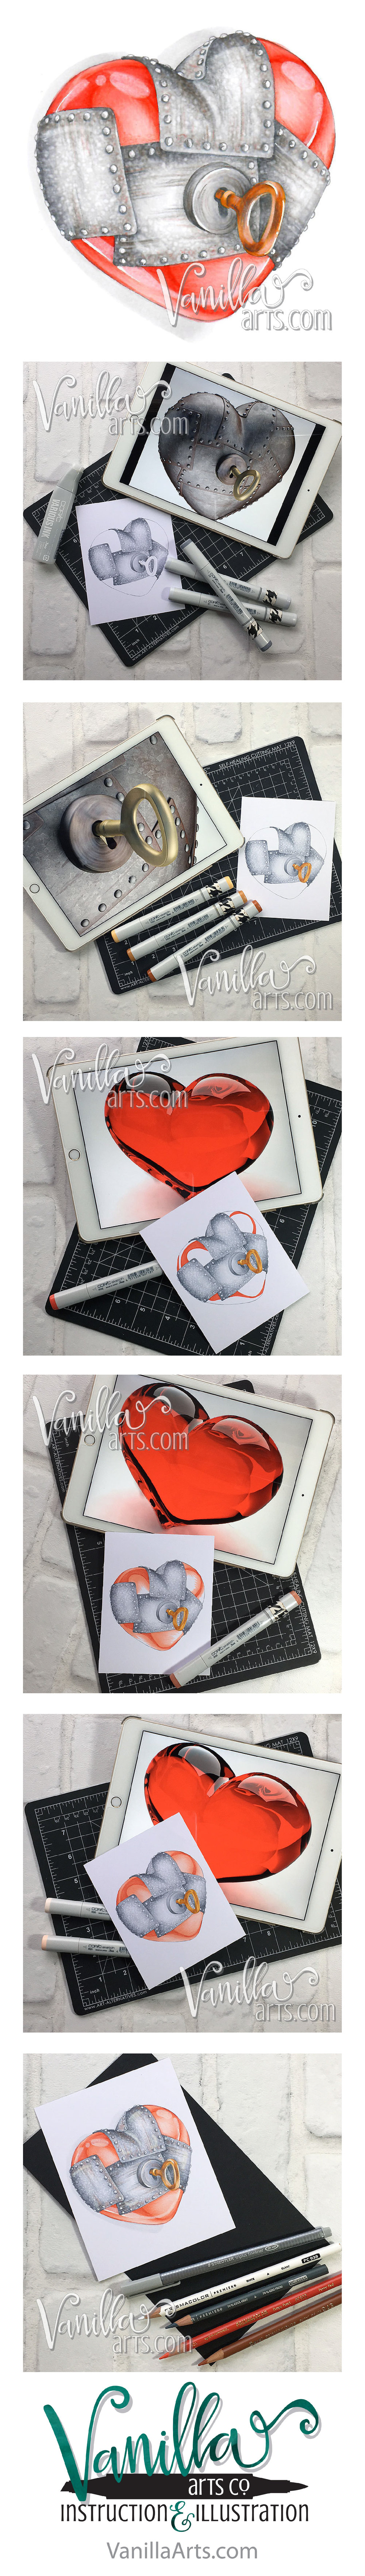 "Join the Free Digi Club to receive challenging stamp images designed for Copic, colored pencil, or watercolor. ""Guarded Heart"" Feb 2017 